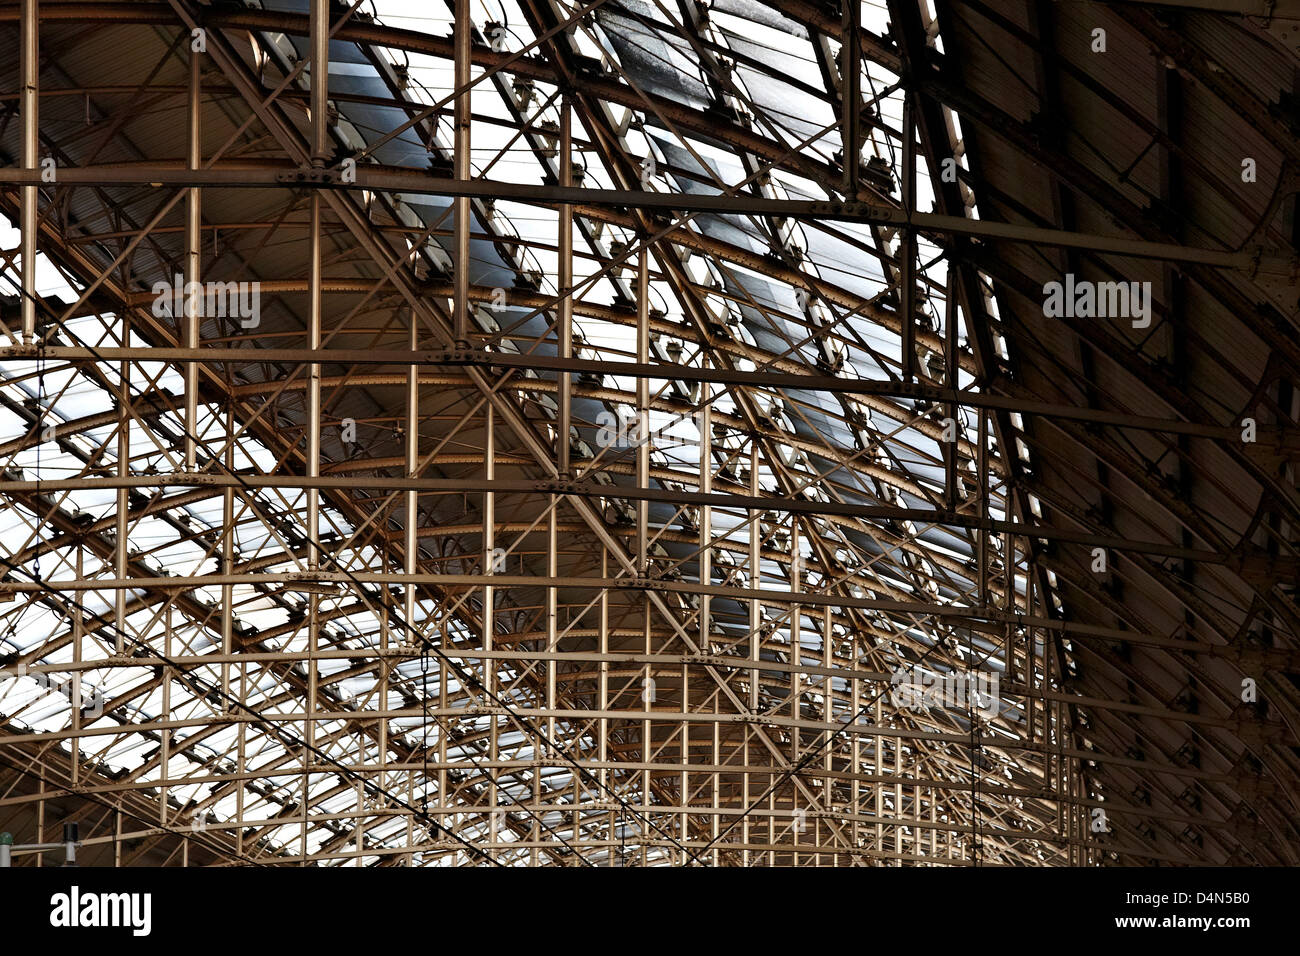 Metal roof structure of Manchester Piccadilly rail station - Stock Image